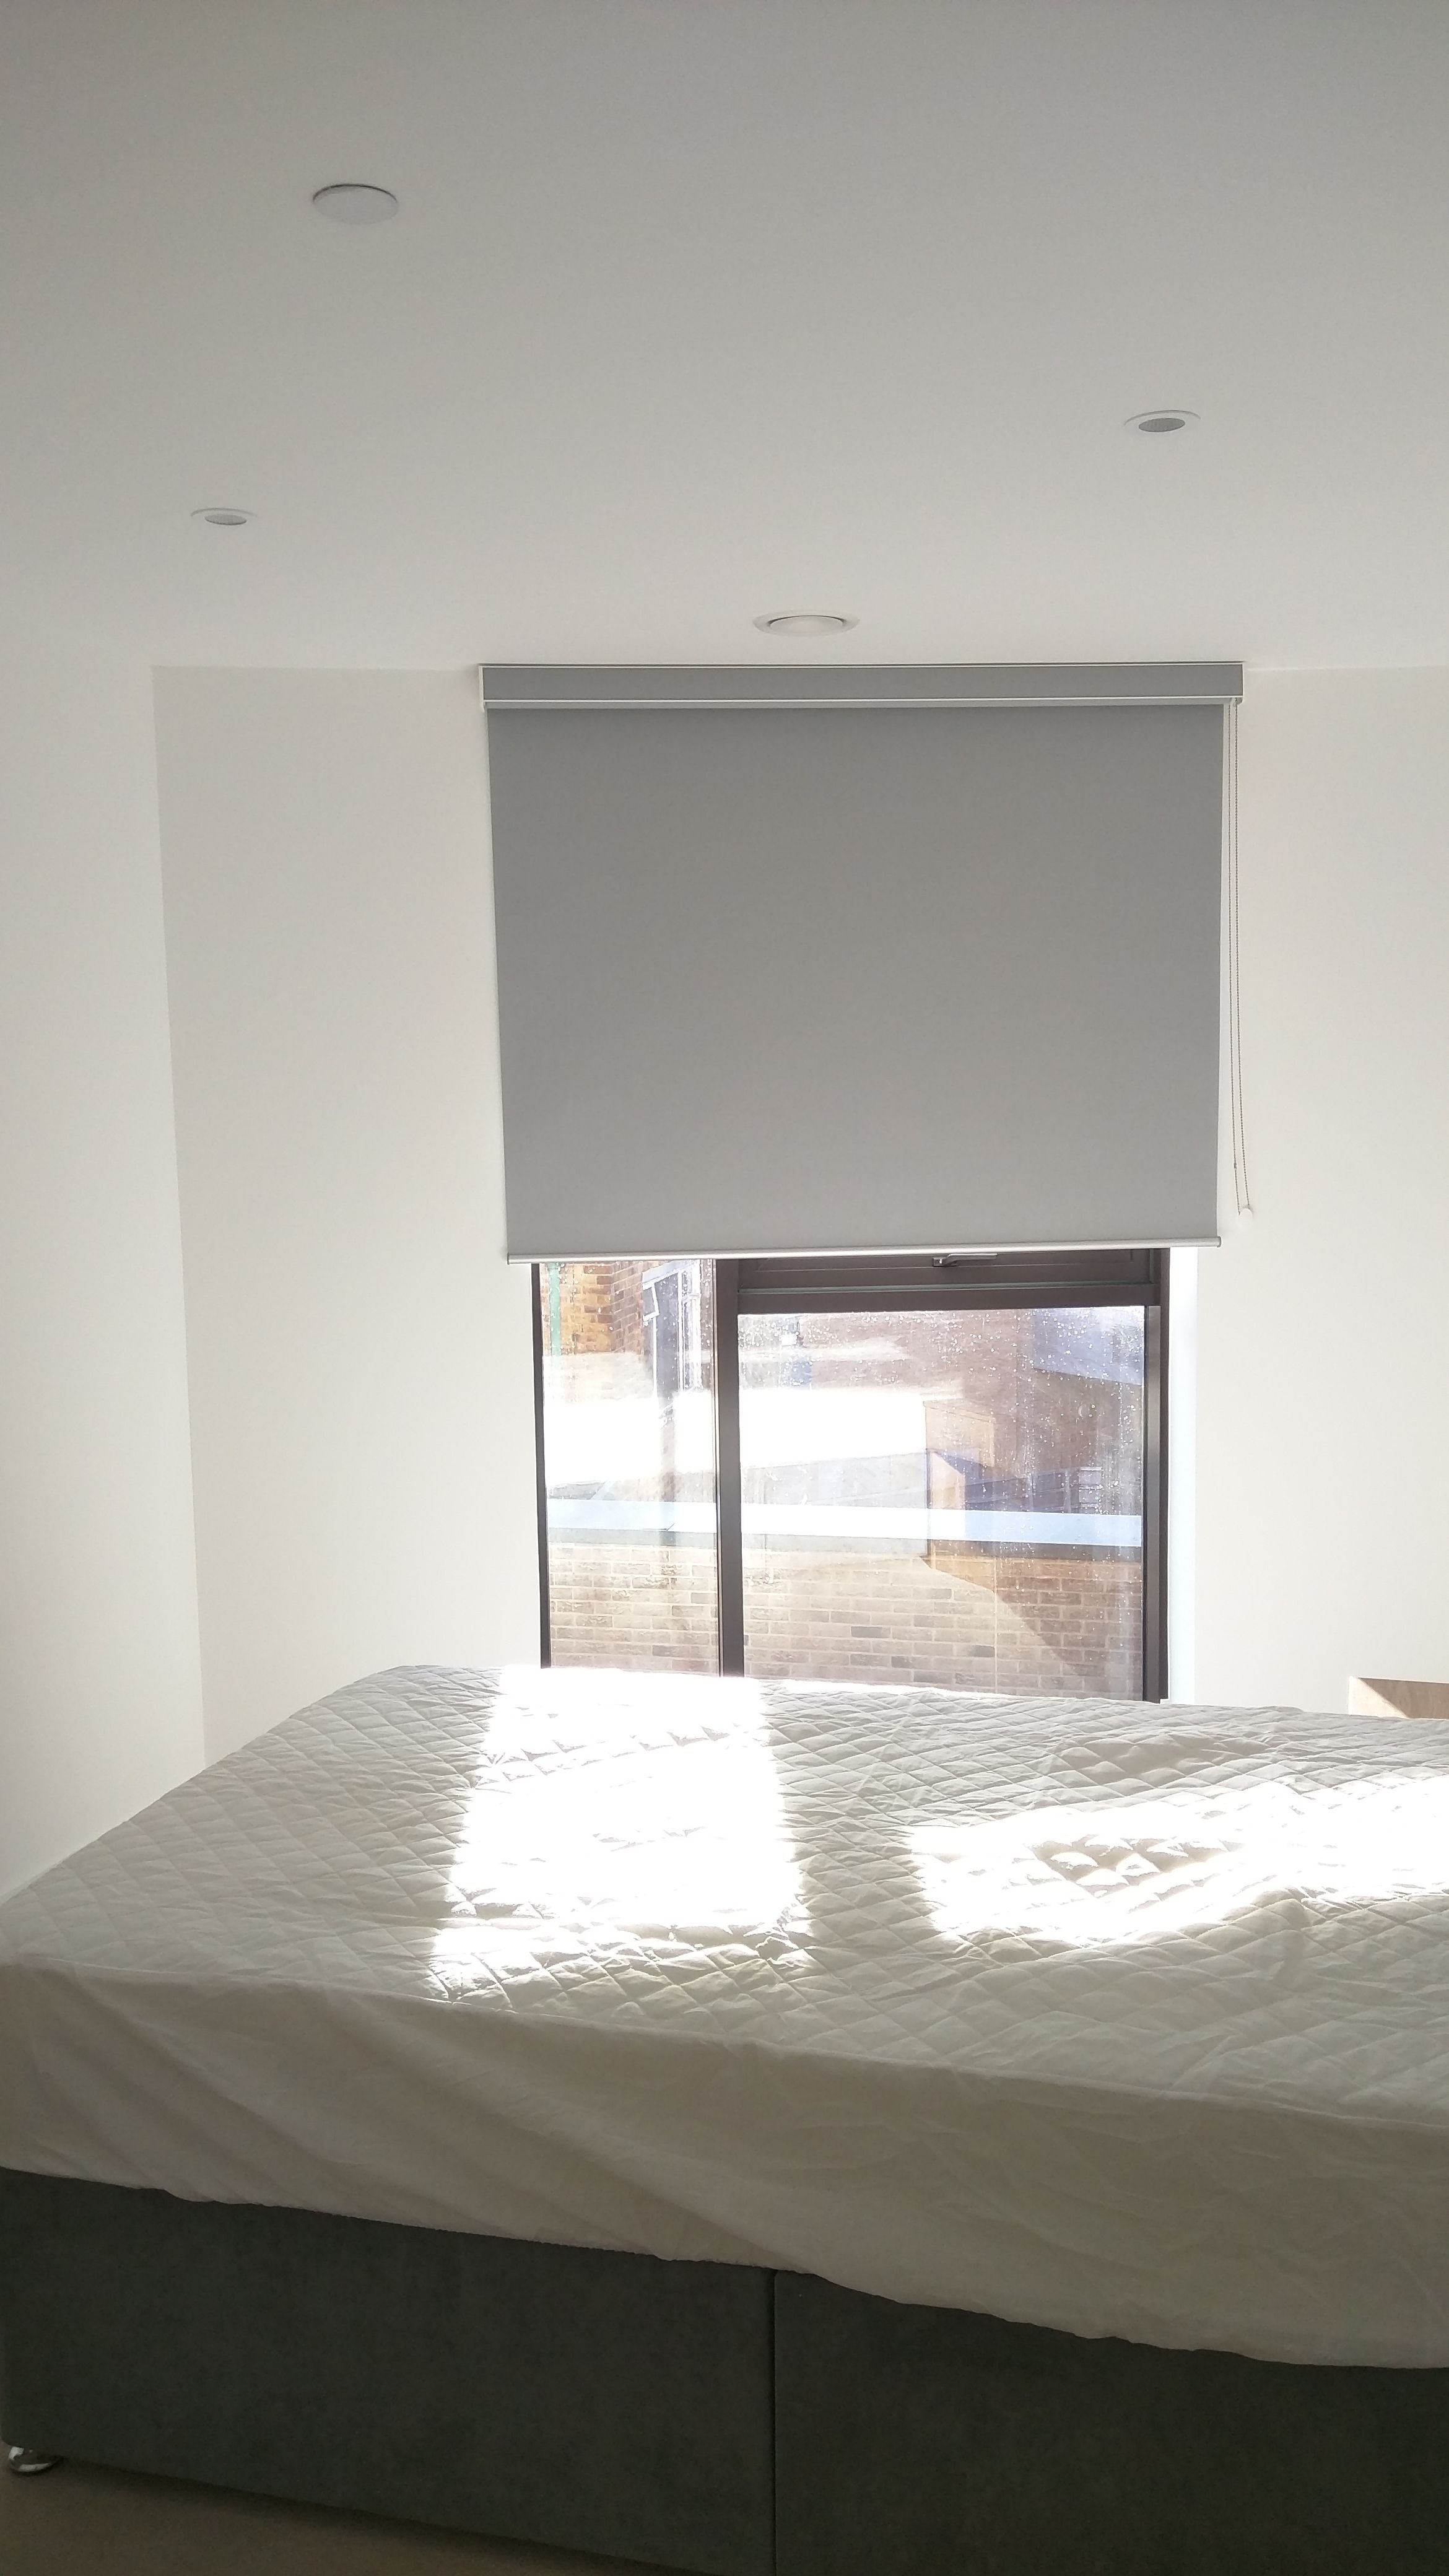 Cheap Roller Blinds Melbourne Blackout Roller Blind With Matching Pelmet Fitted Outside The